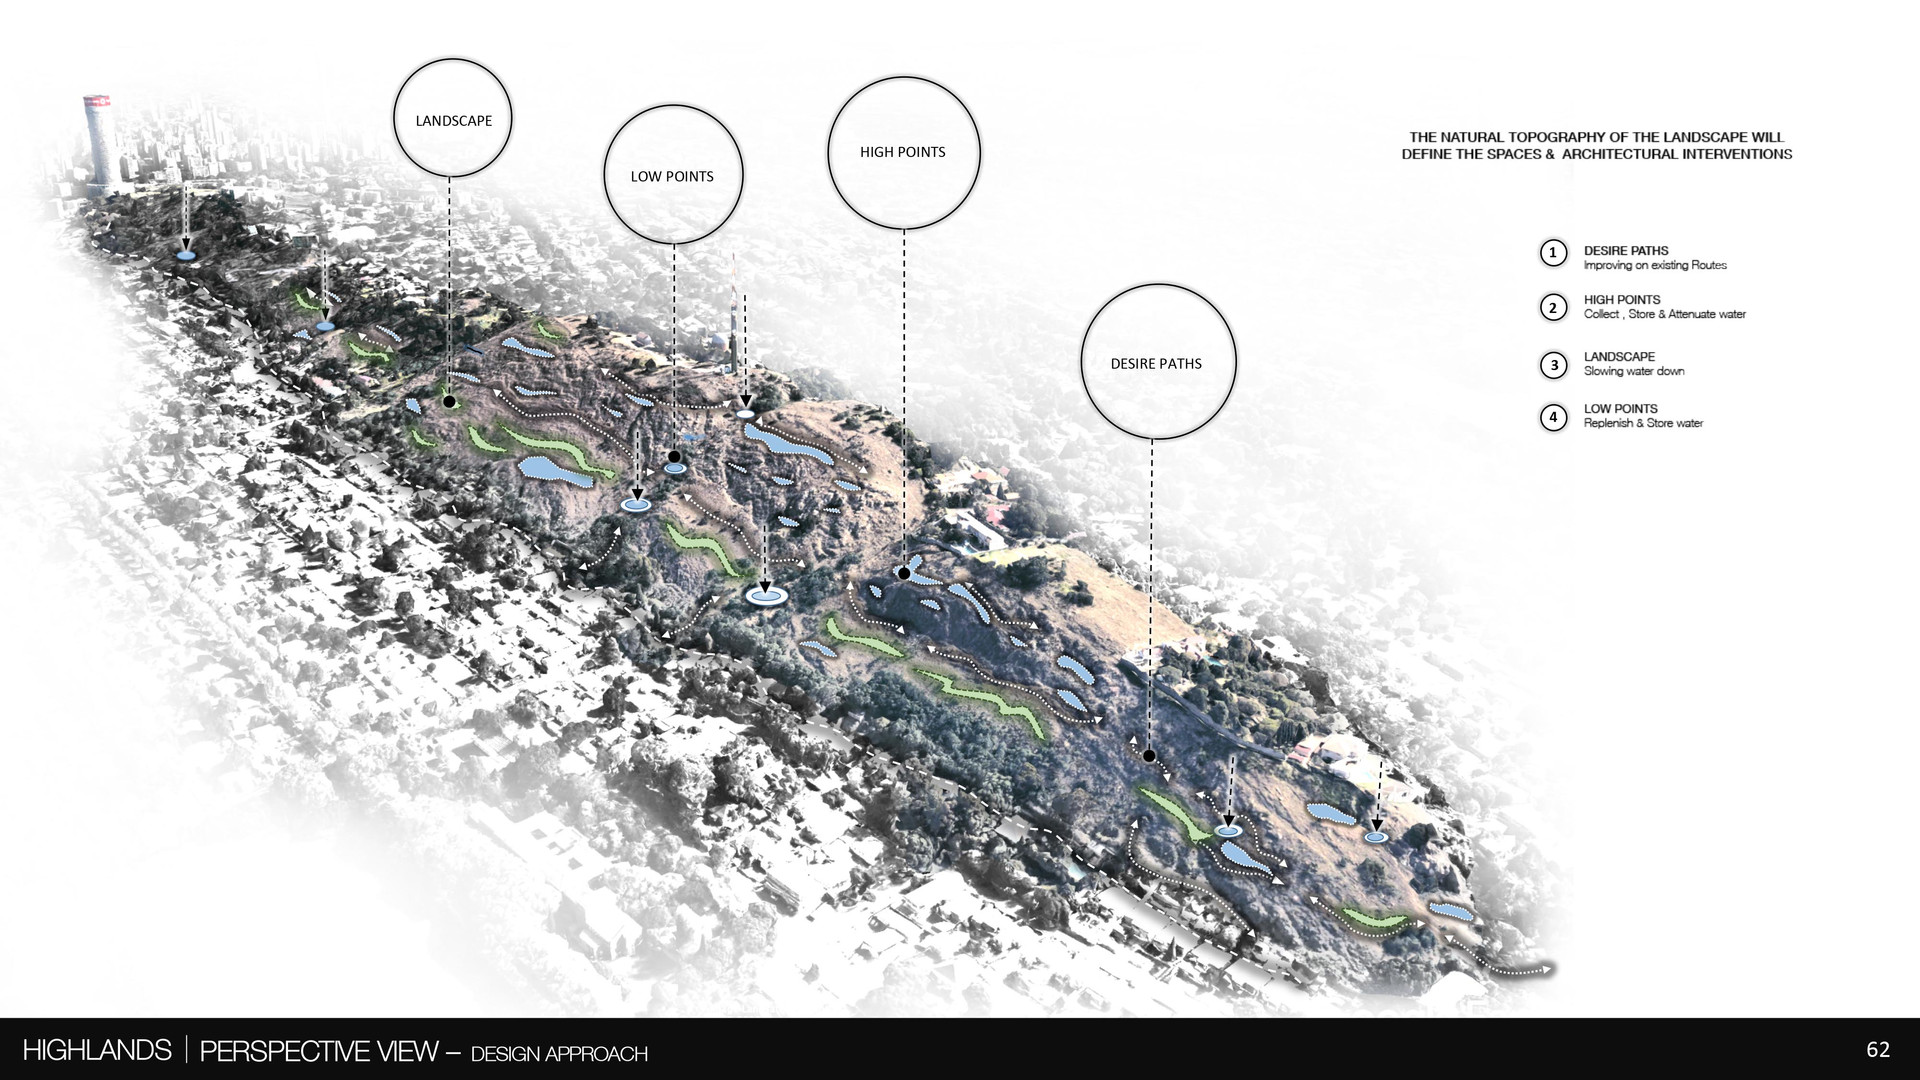 Design approach - A perspective view. Hassett, W. Unit 17. 2020.